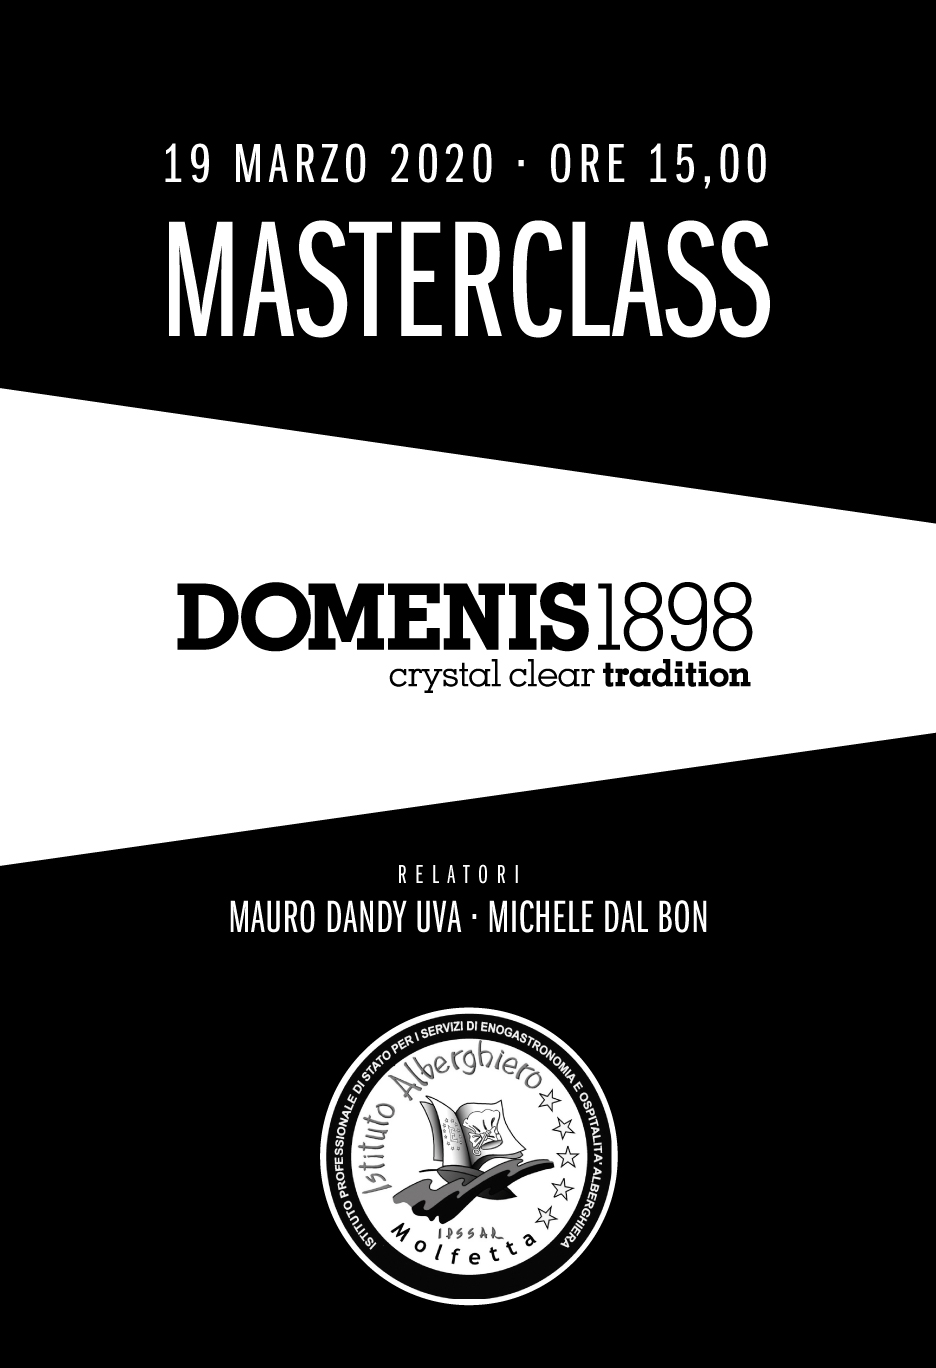 Masterclass DOMENIS1898 & Hotel and Catering School Molfetta